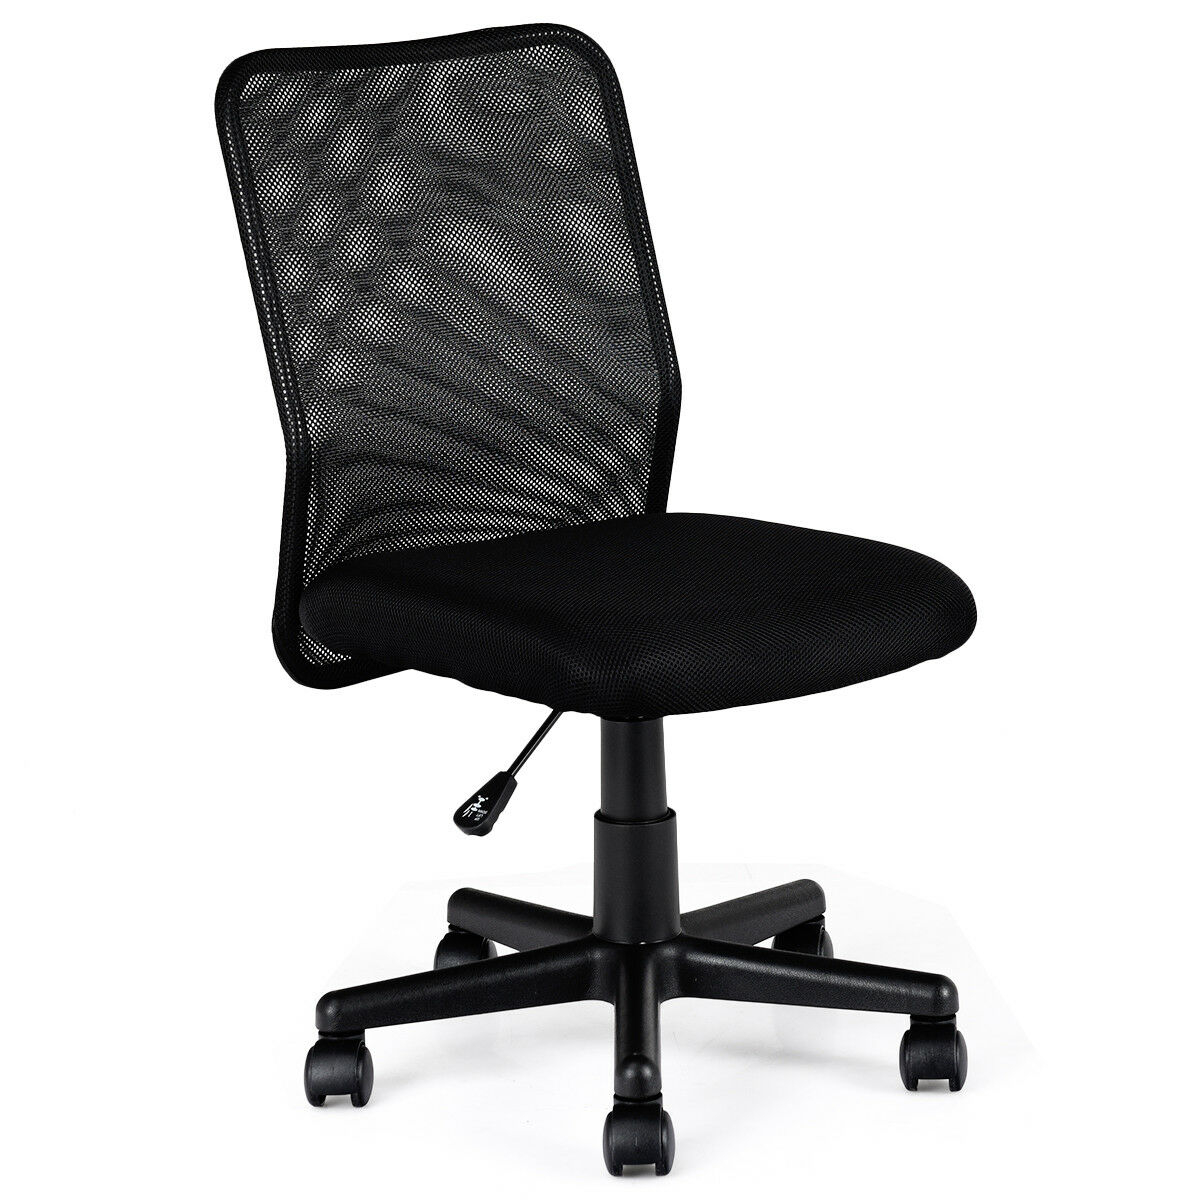 Costway Mid-back Adjustable Ergonomic Mesh Swivel Computer Office Desk Task Chair